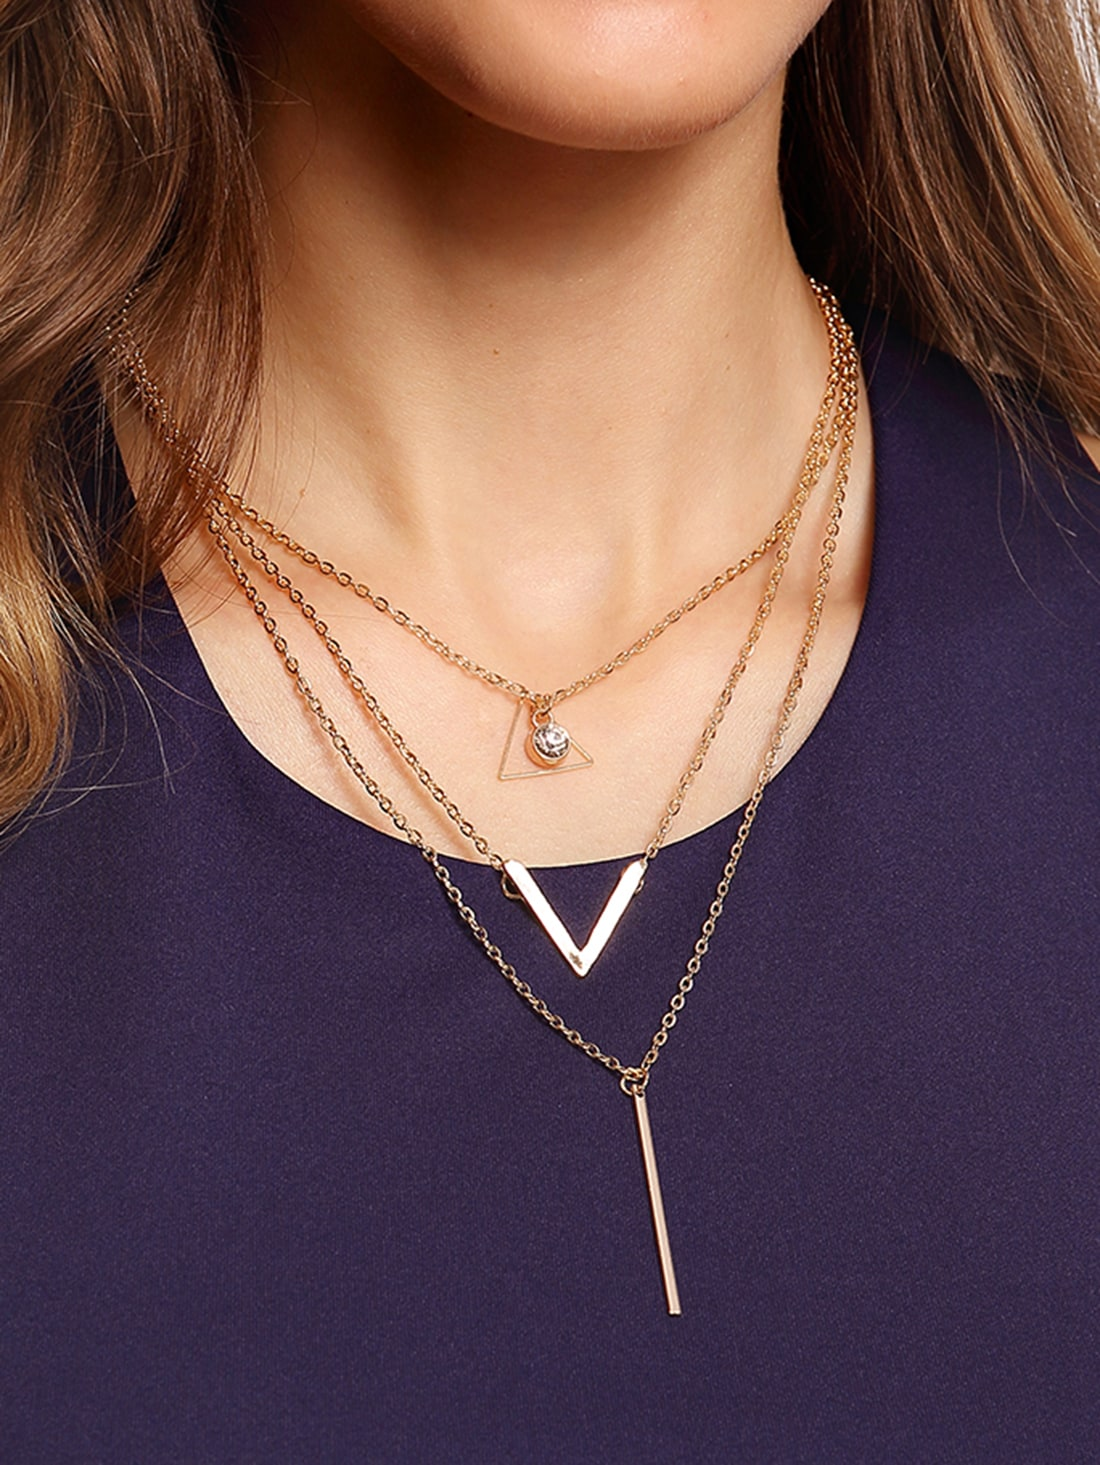 Crystal And Metal Bar Pendant Row Link NecklaceCrystal And Metal Bar Pendant Row Link Necklace<br><br>color: Champagne<br>size: None